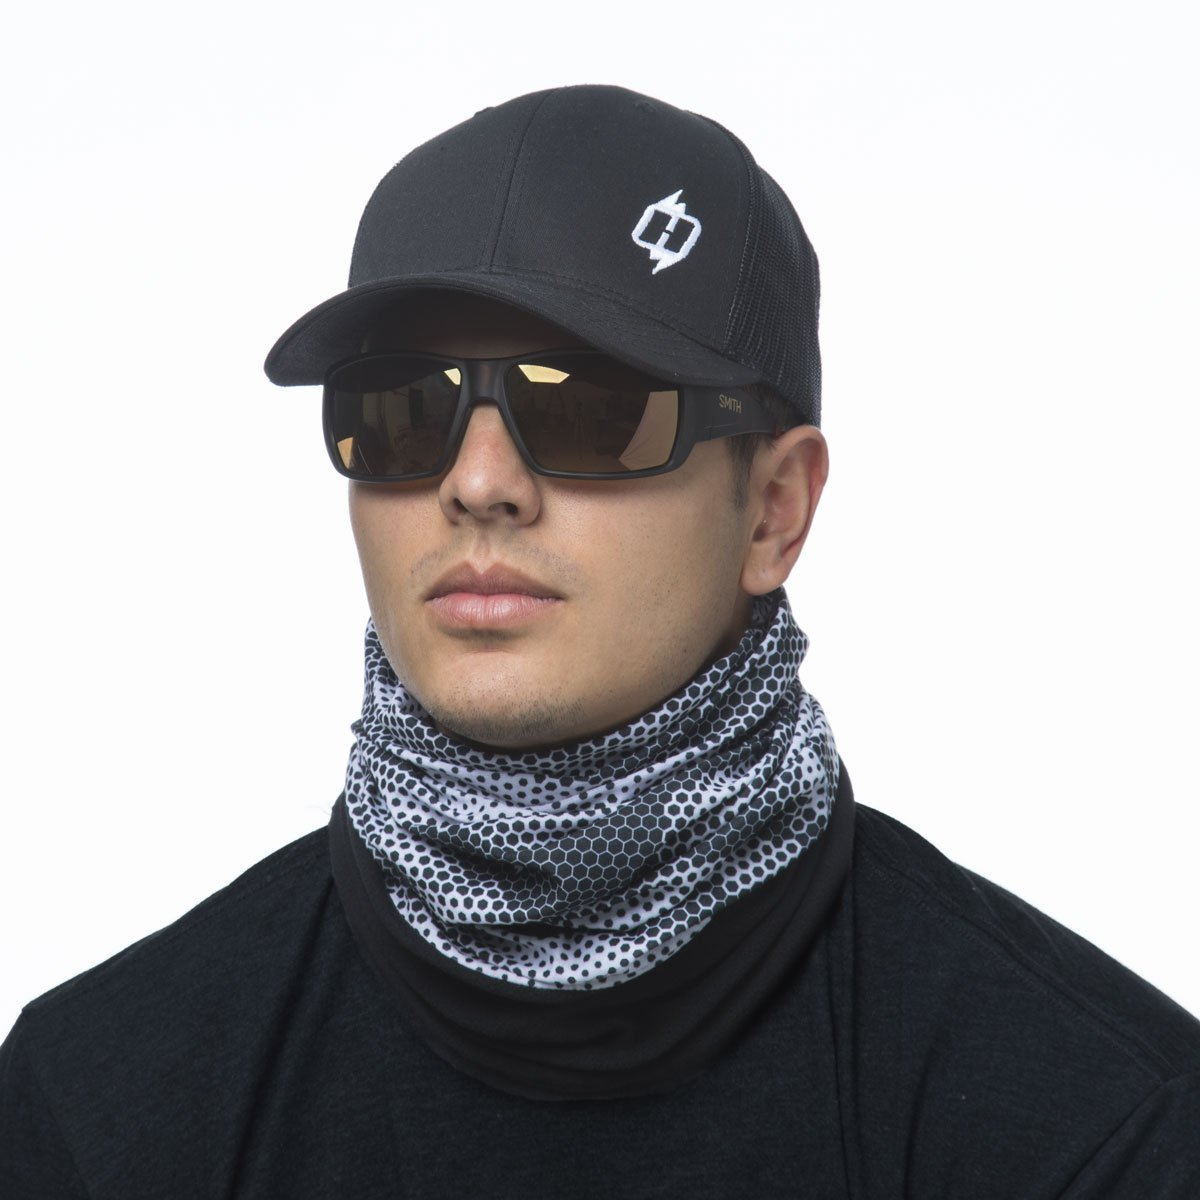 hoorag-sub-zero-what-the-hex-winter-fleece-face-mask-neck